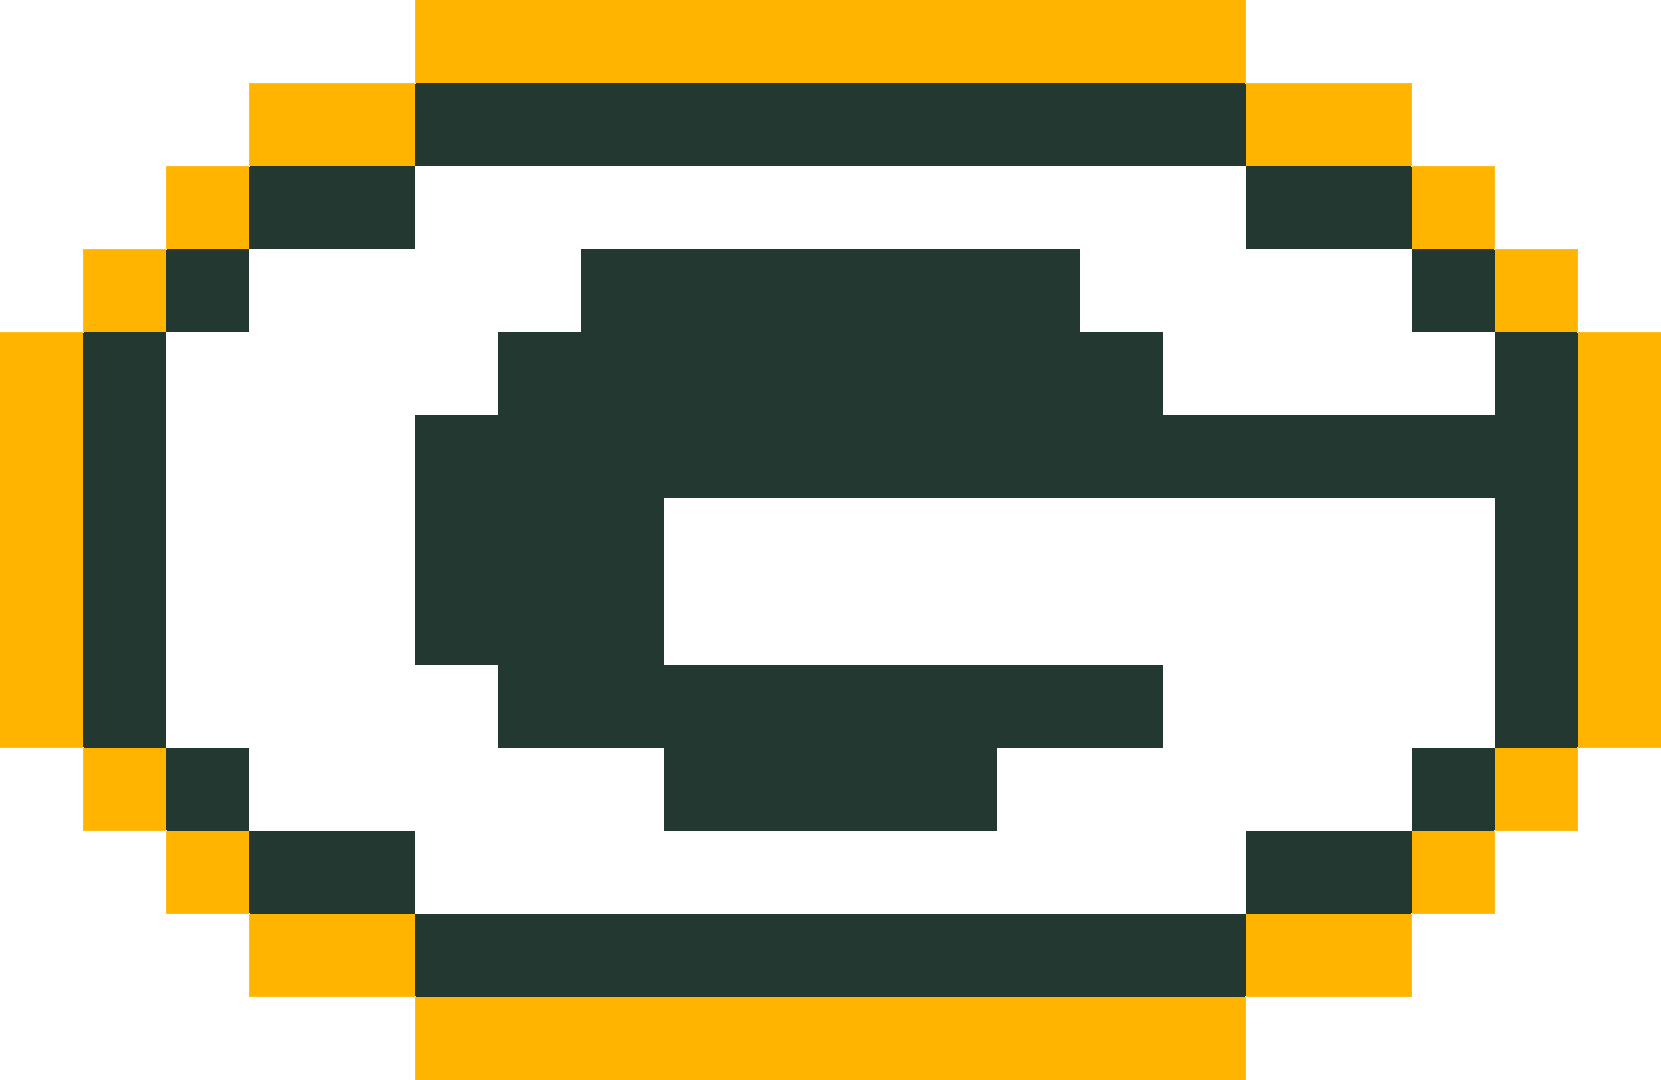 1661x1080 Green Bay Packers Minecraft Green Bay Wikia Fandom Powered By